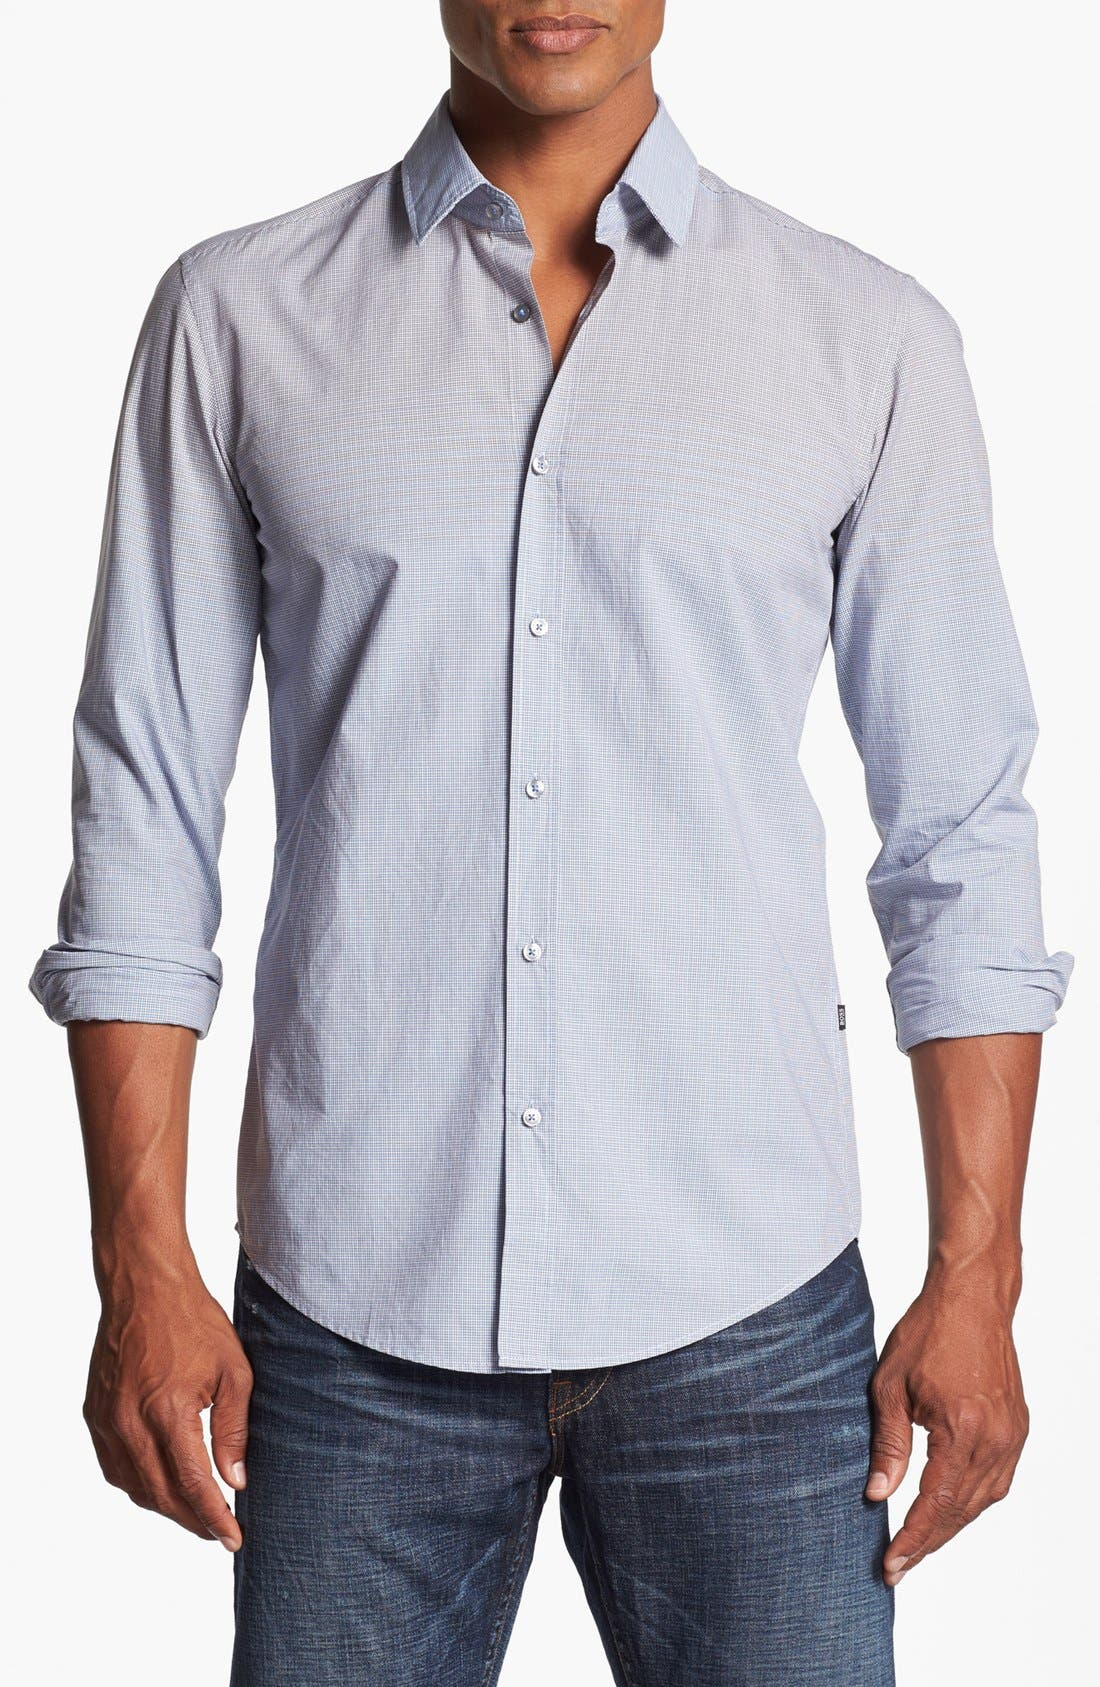 Main Image - BOSS HUGO BOSS 'Ronny' Slim Fit Ombré Check Sport Shirt